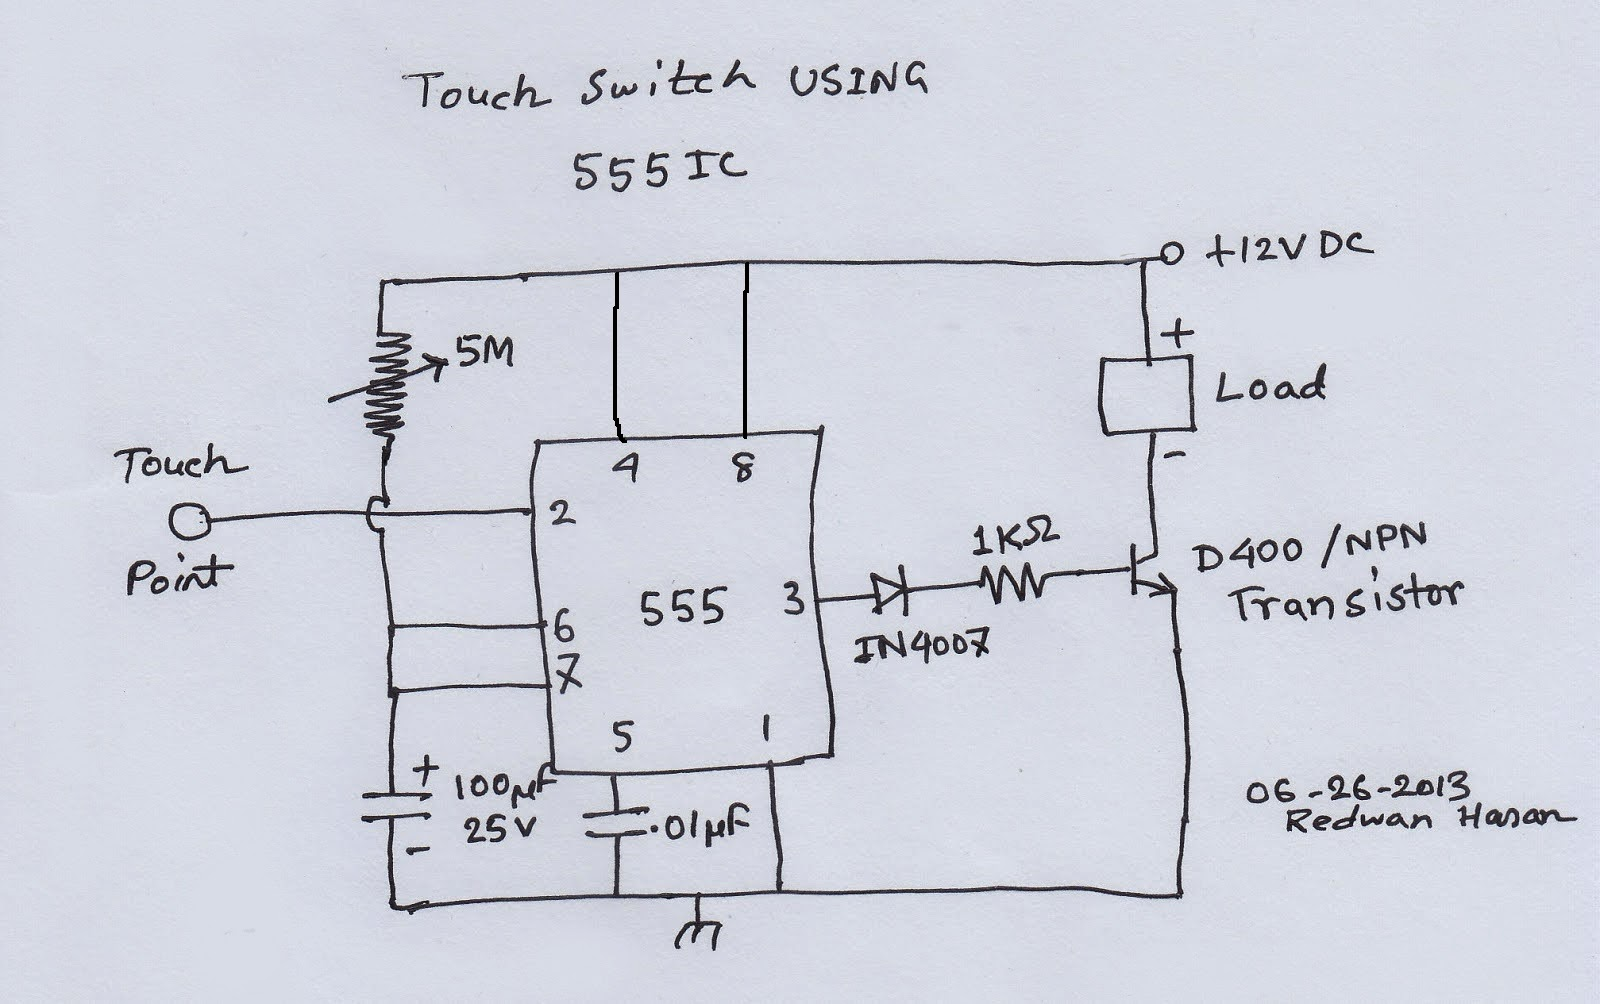 Scavenger's Blog: Touch Switch Using 555 IC  Hobby